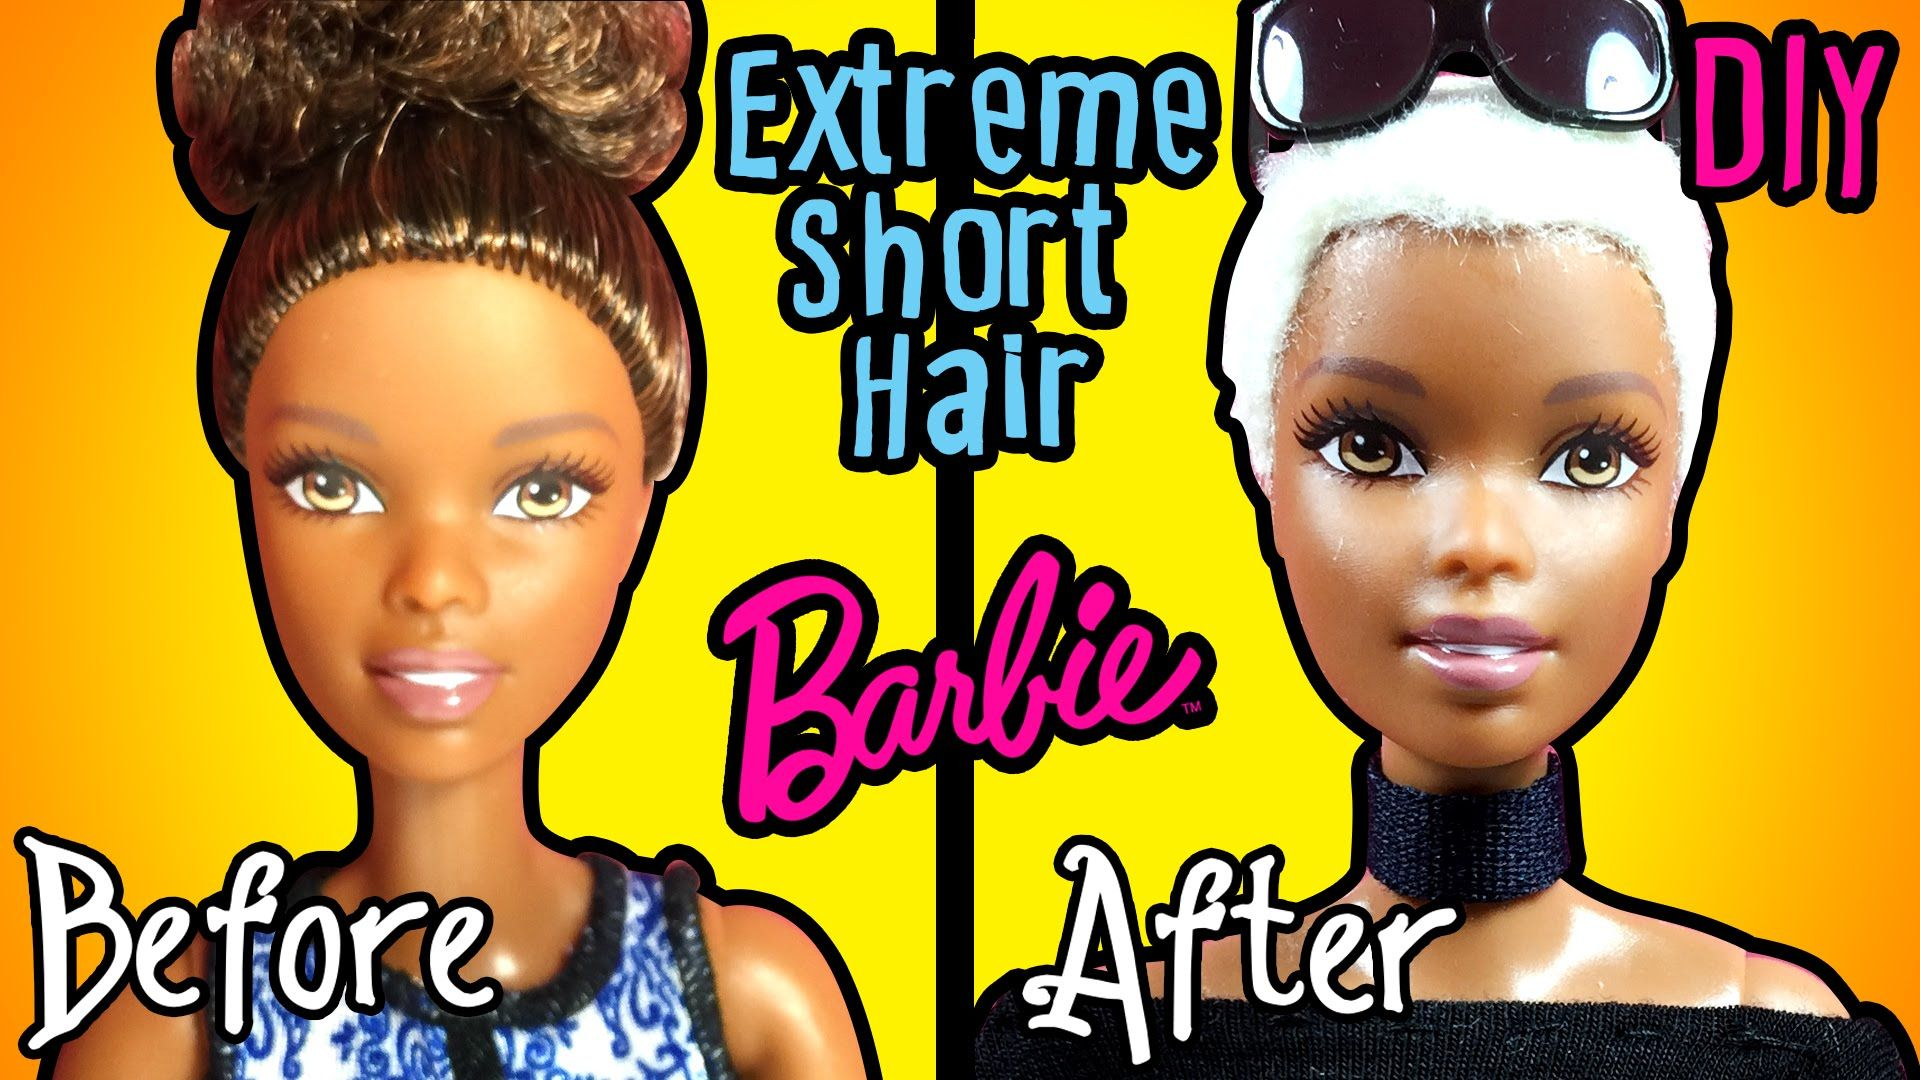 Barbie Hairstyles New How To Cut Extreme Short Haircut For Barbie Doll  Diy Doll Hair